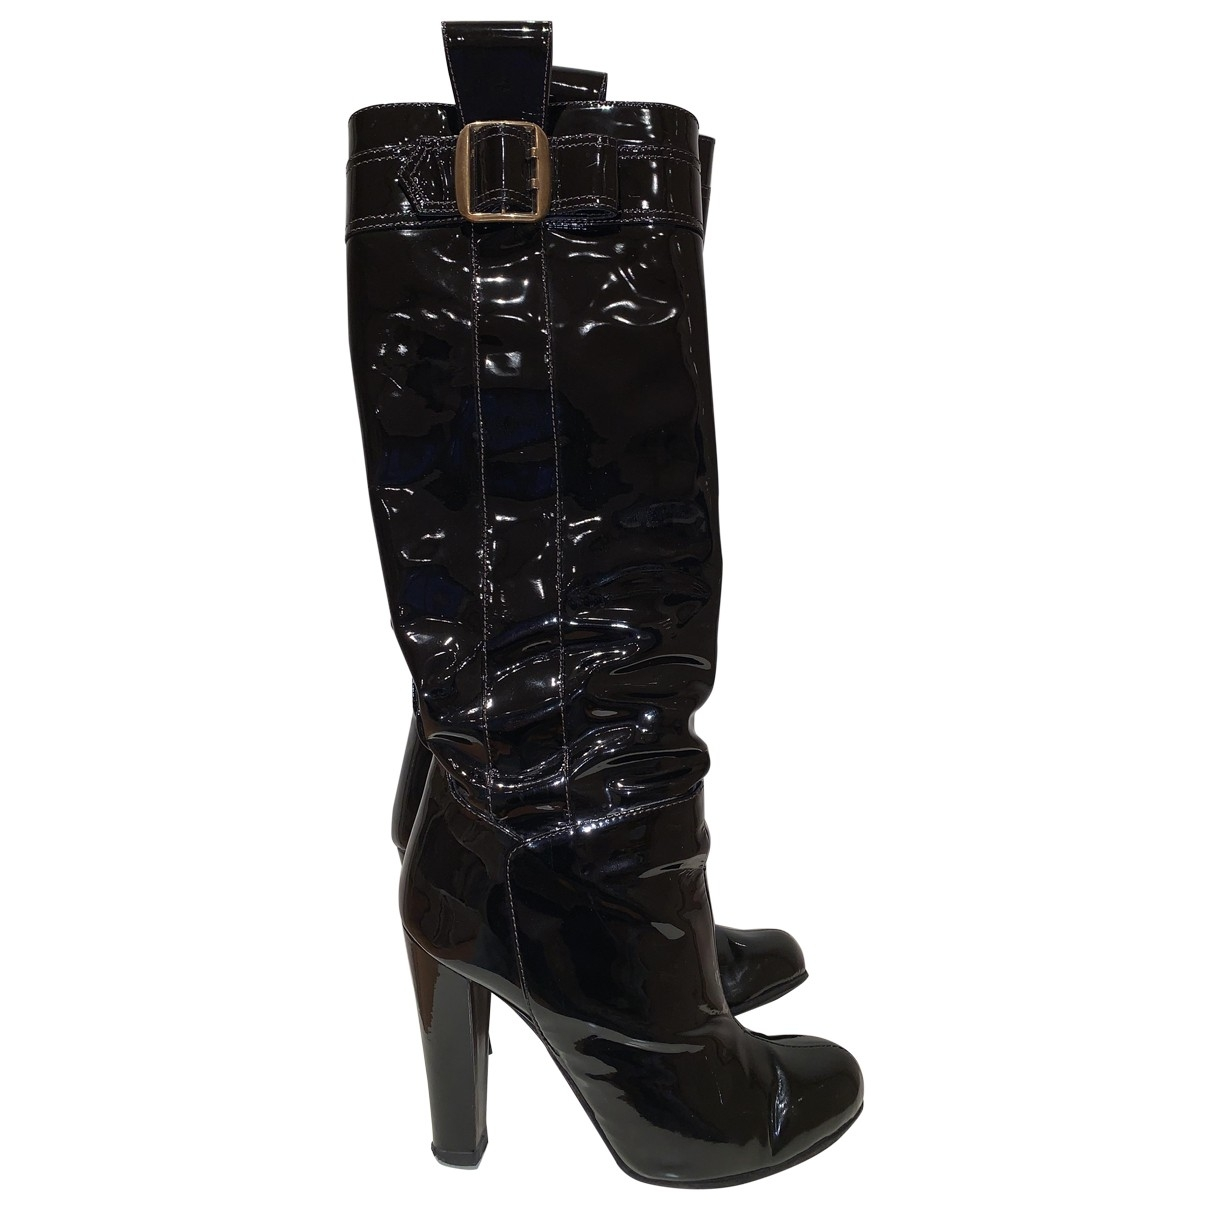 Dolce & Gabbana \N Black Patent leather Boots for Women 37.5 EU